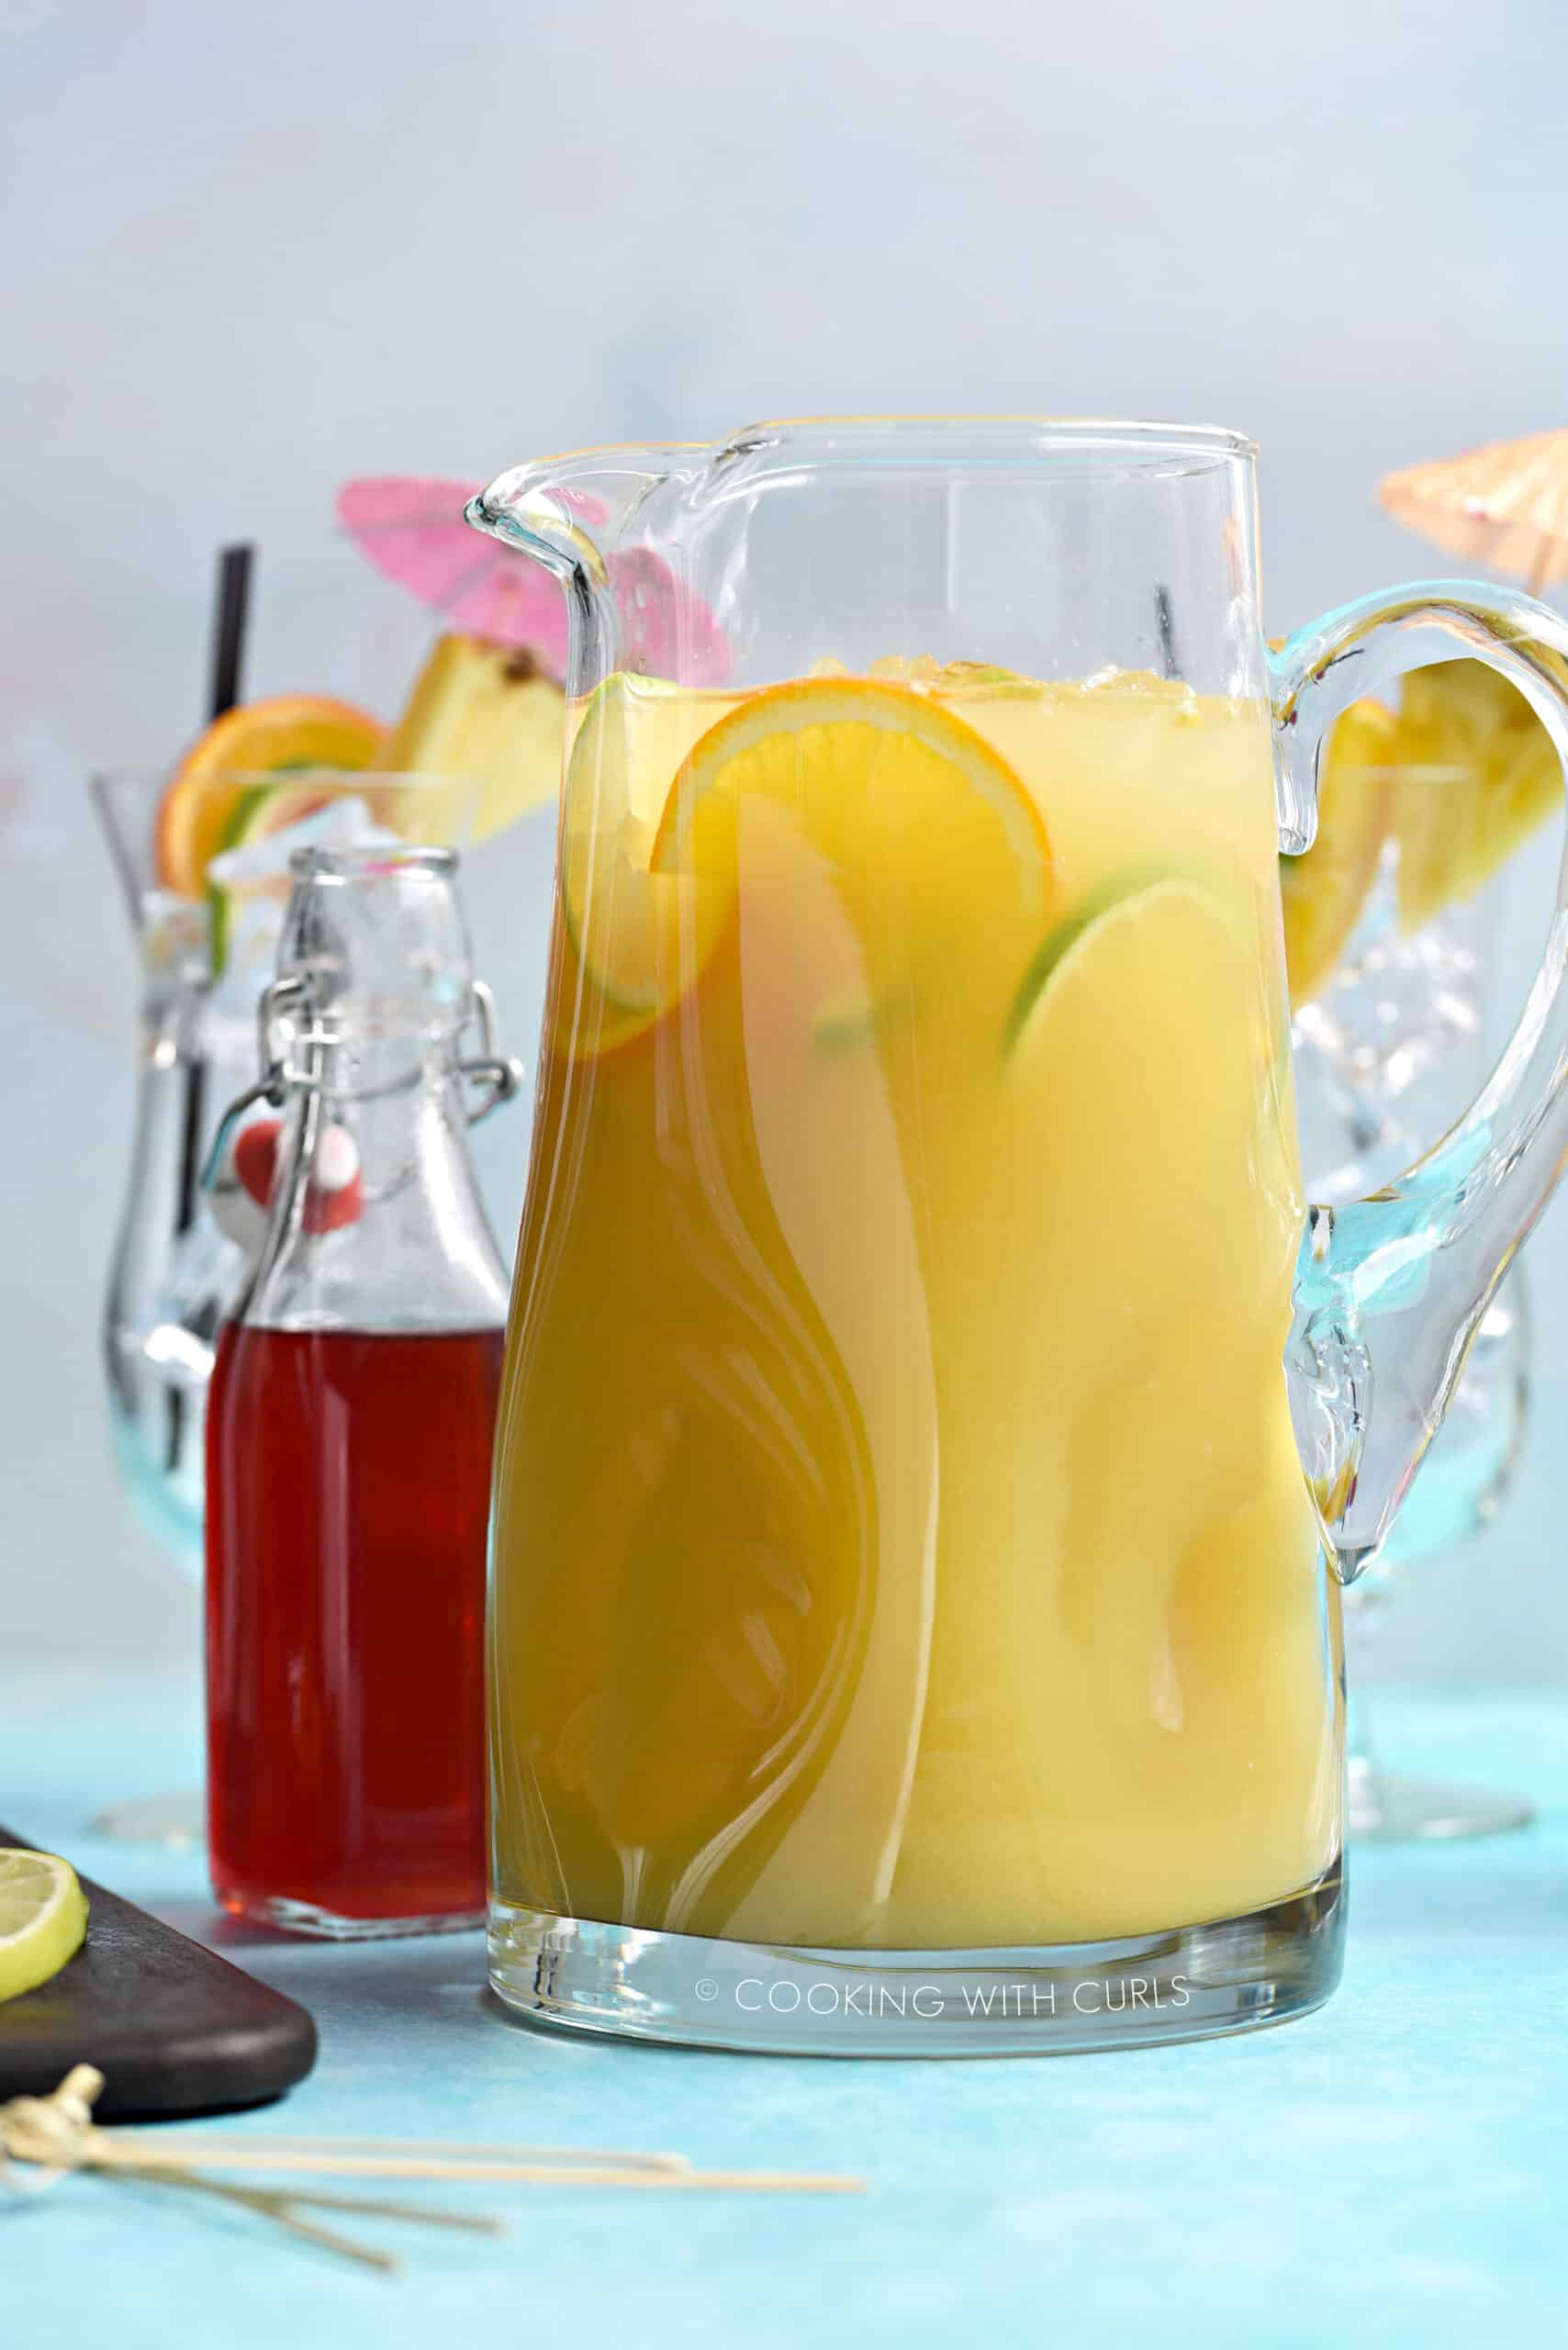 A pitcher of fruit juices and rum with two glasses filled with ice and a bottle of strawberry syrup in the background.